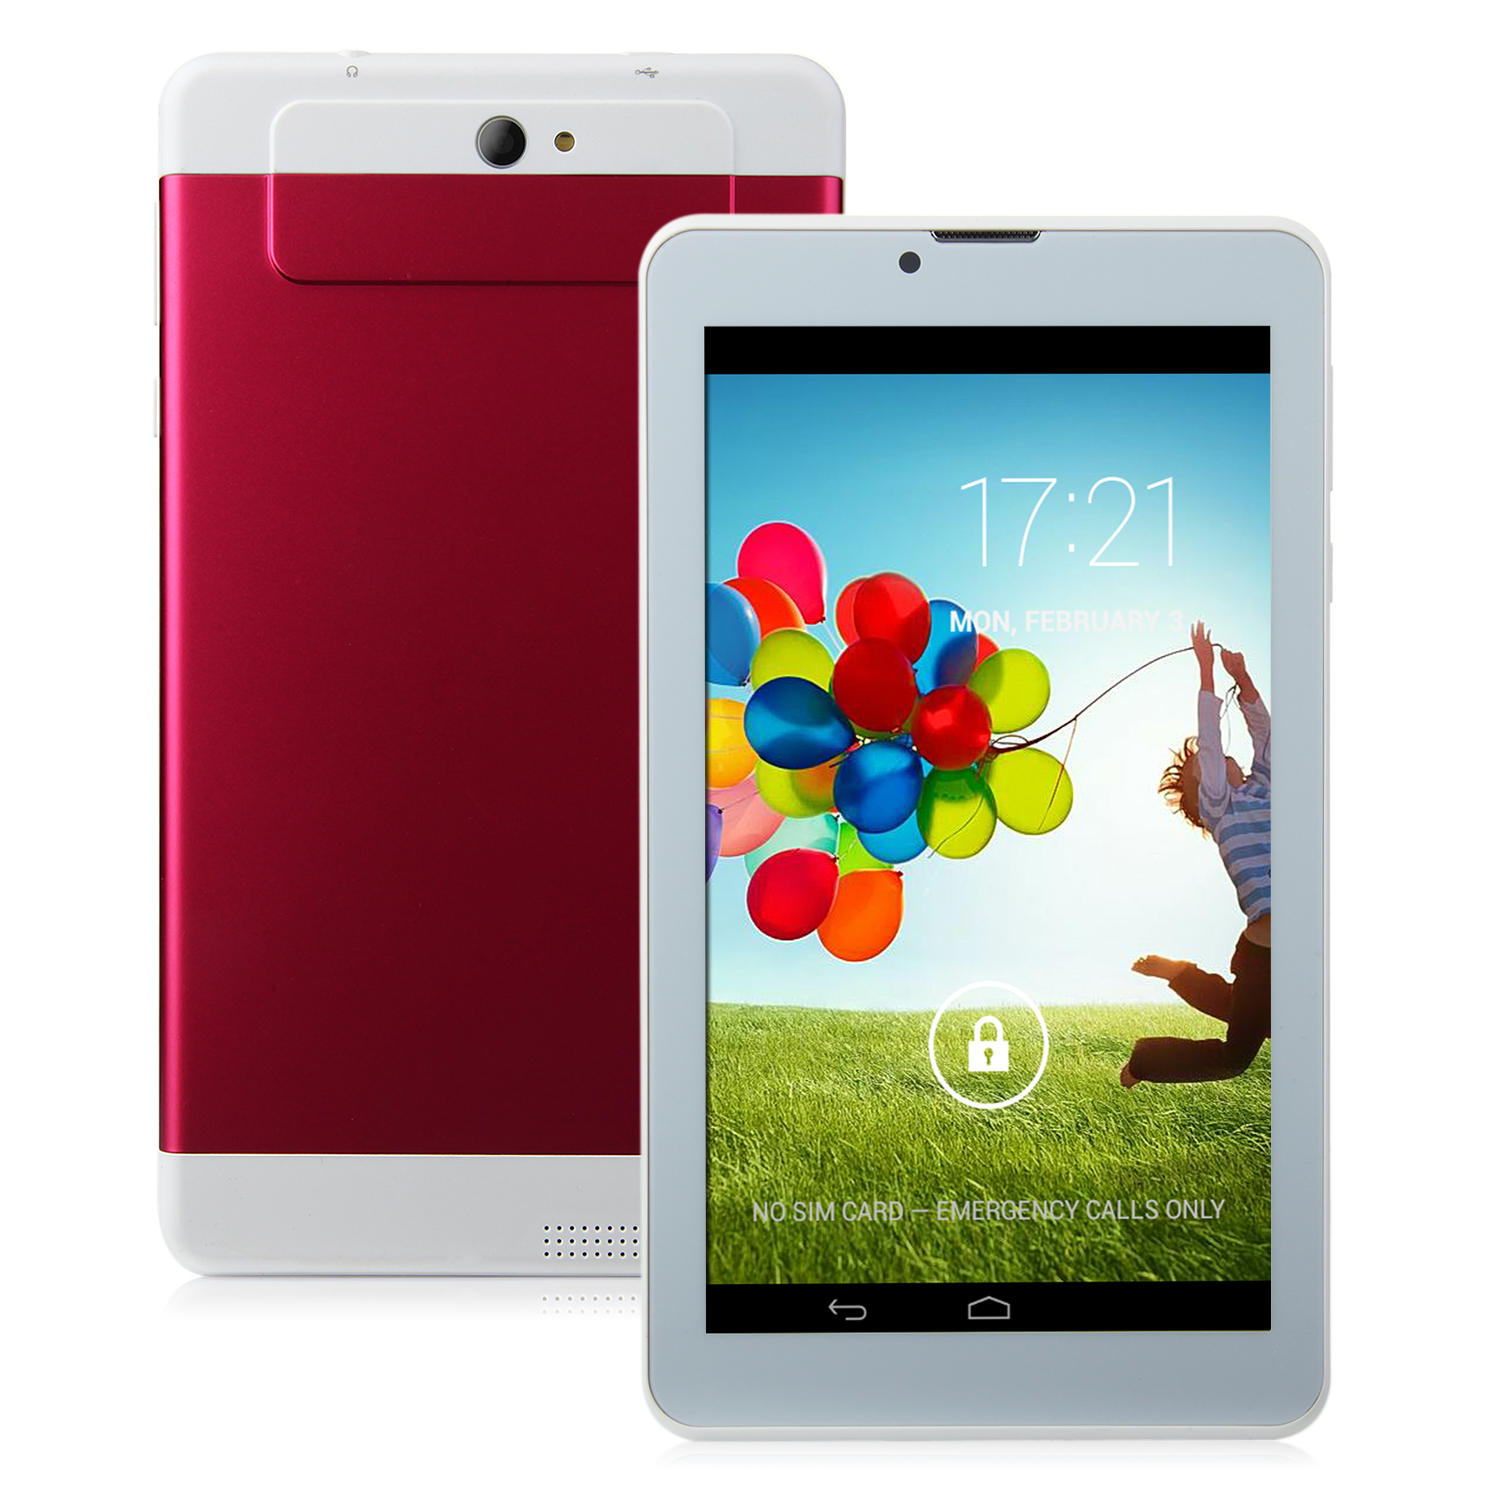 S73 3G Tablet PC 7.0 Inch Dual Core MTK6572W Android 4.2 4GB WCDMA Red